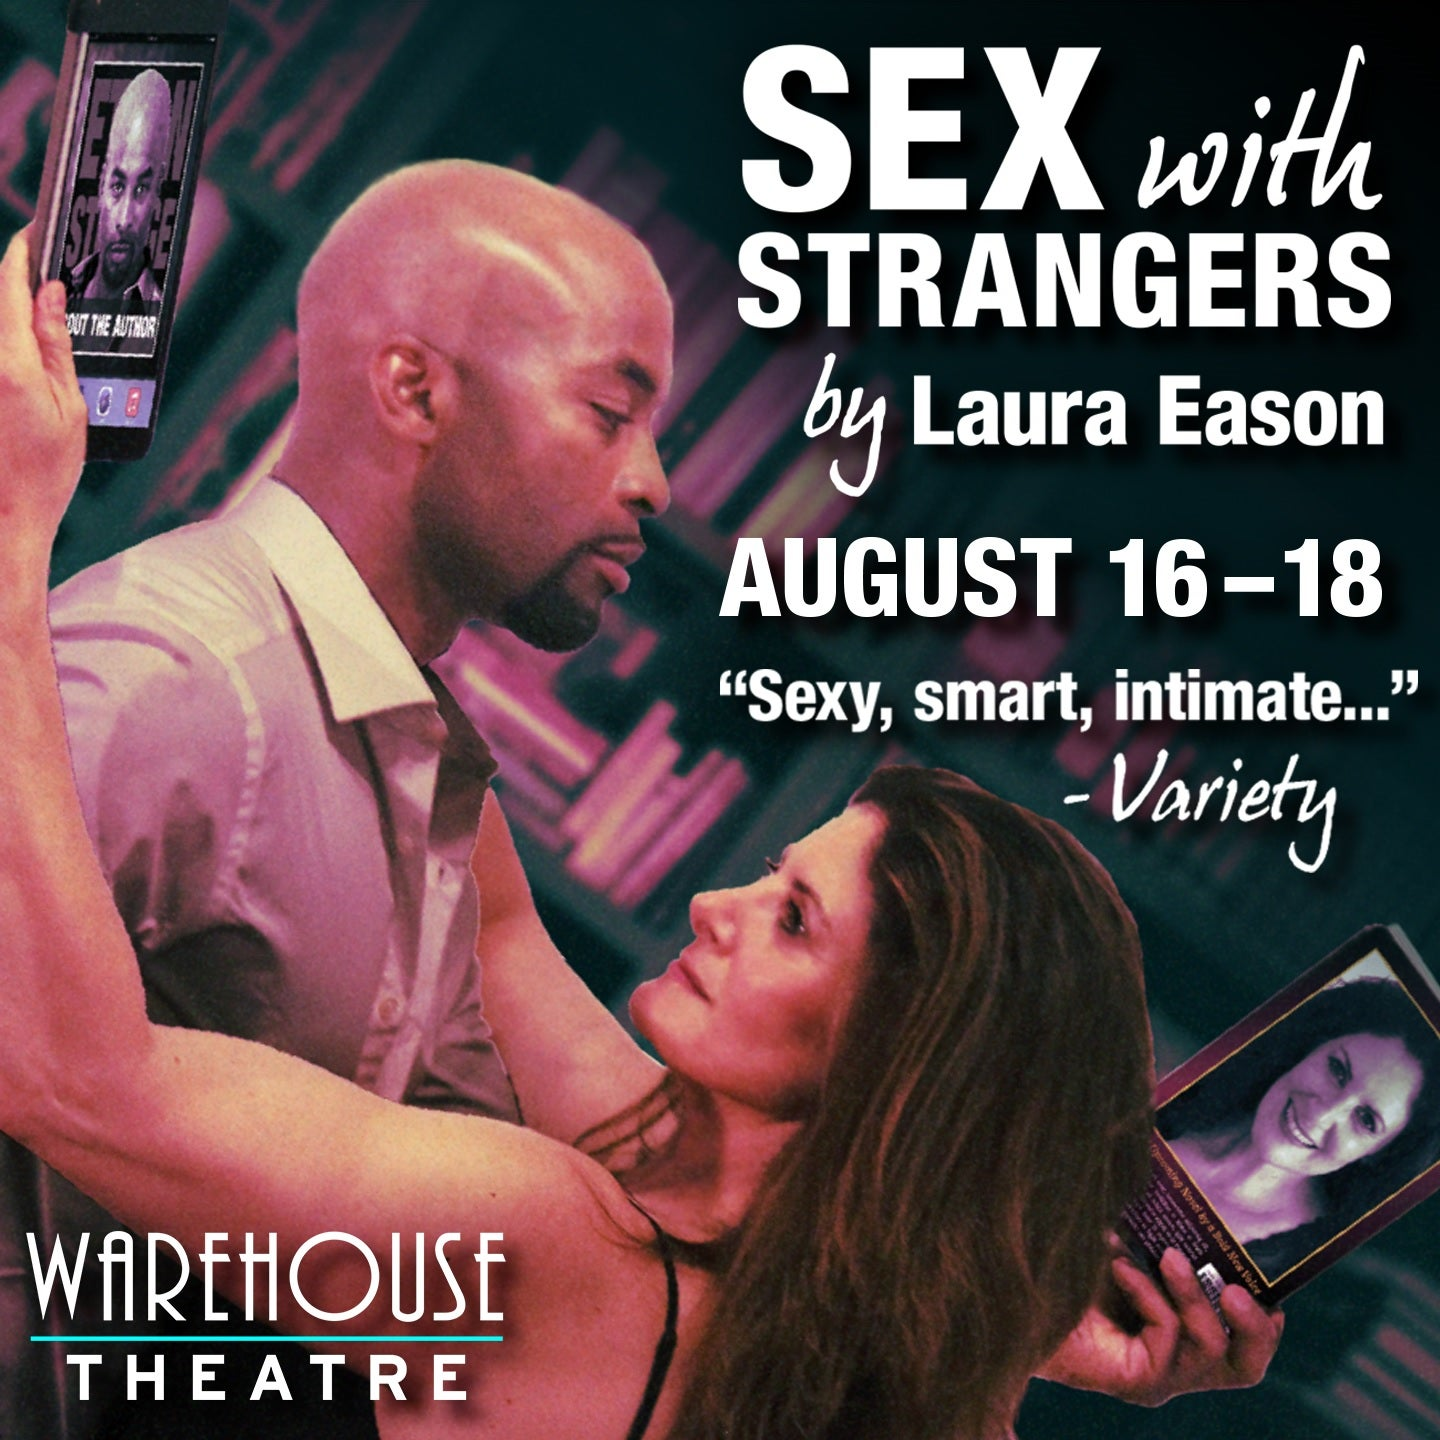 Intimate theatre sex